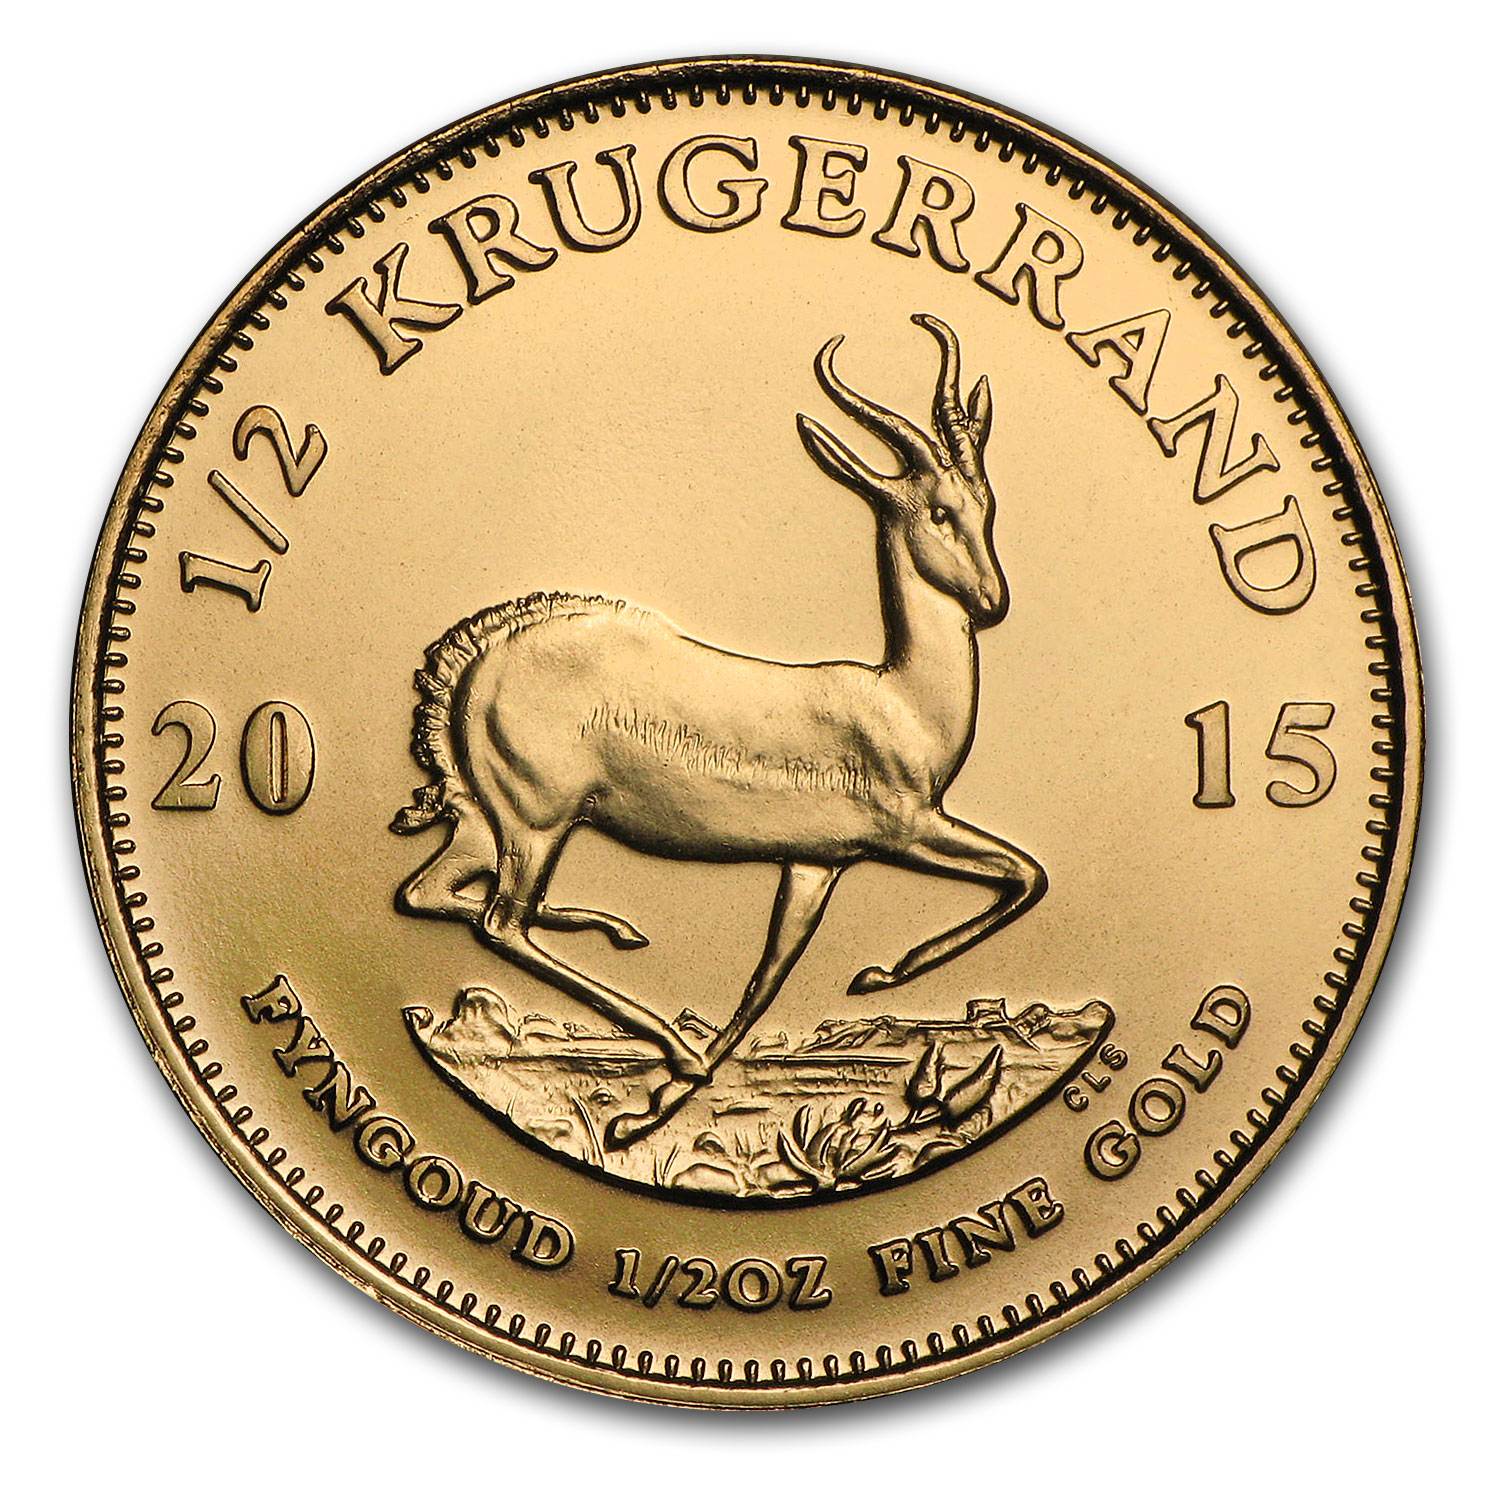 2015 South Africa 1/2 oz Gold Krugerrand